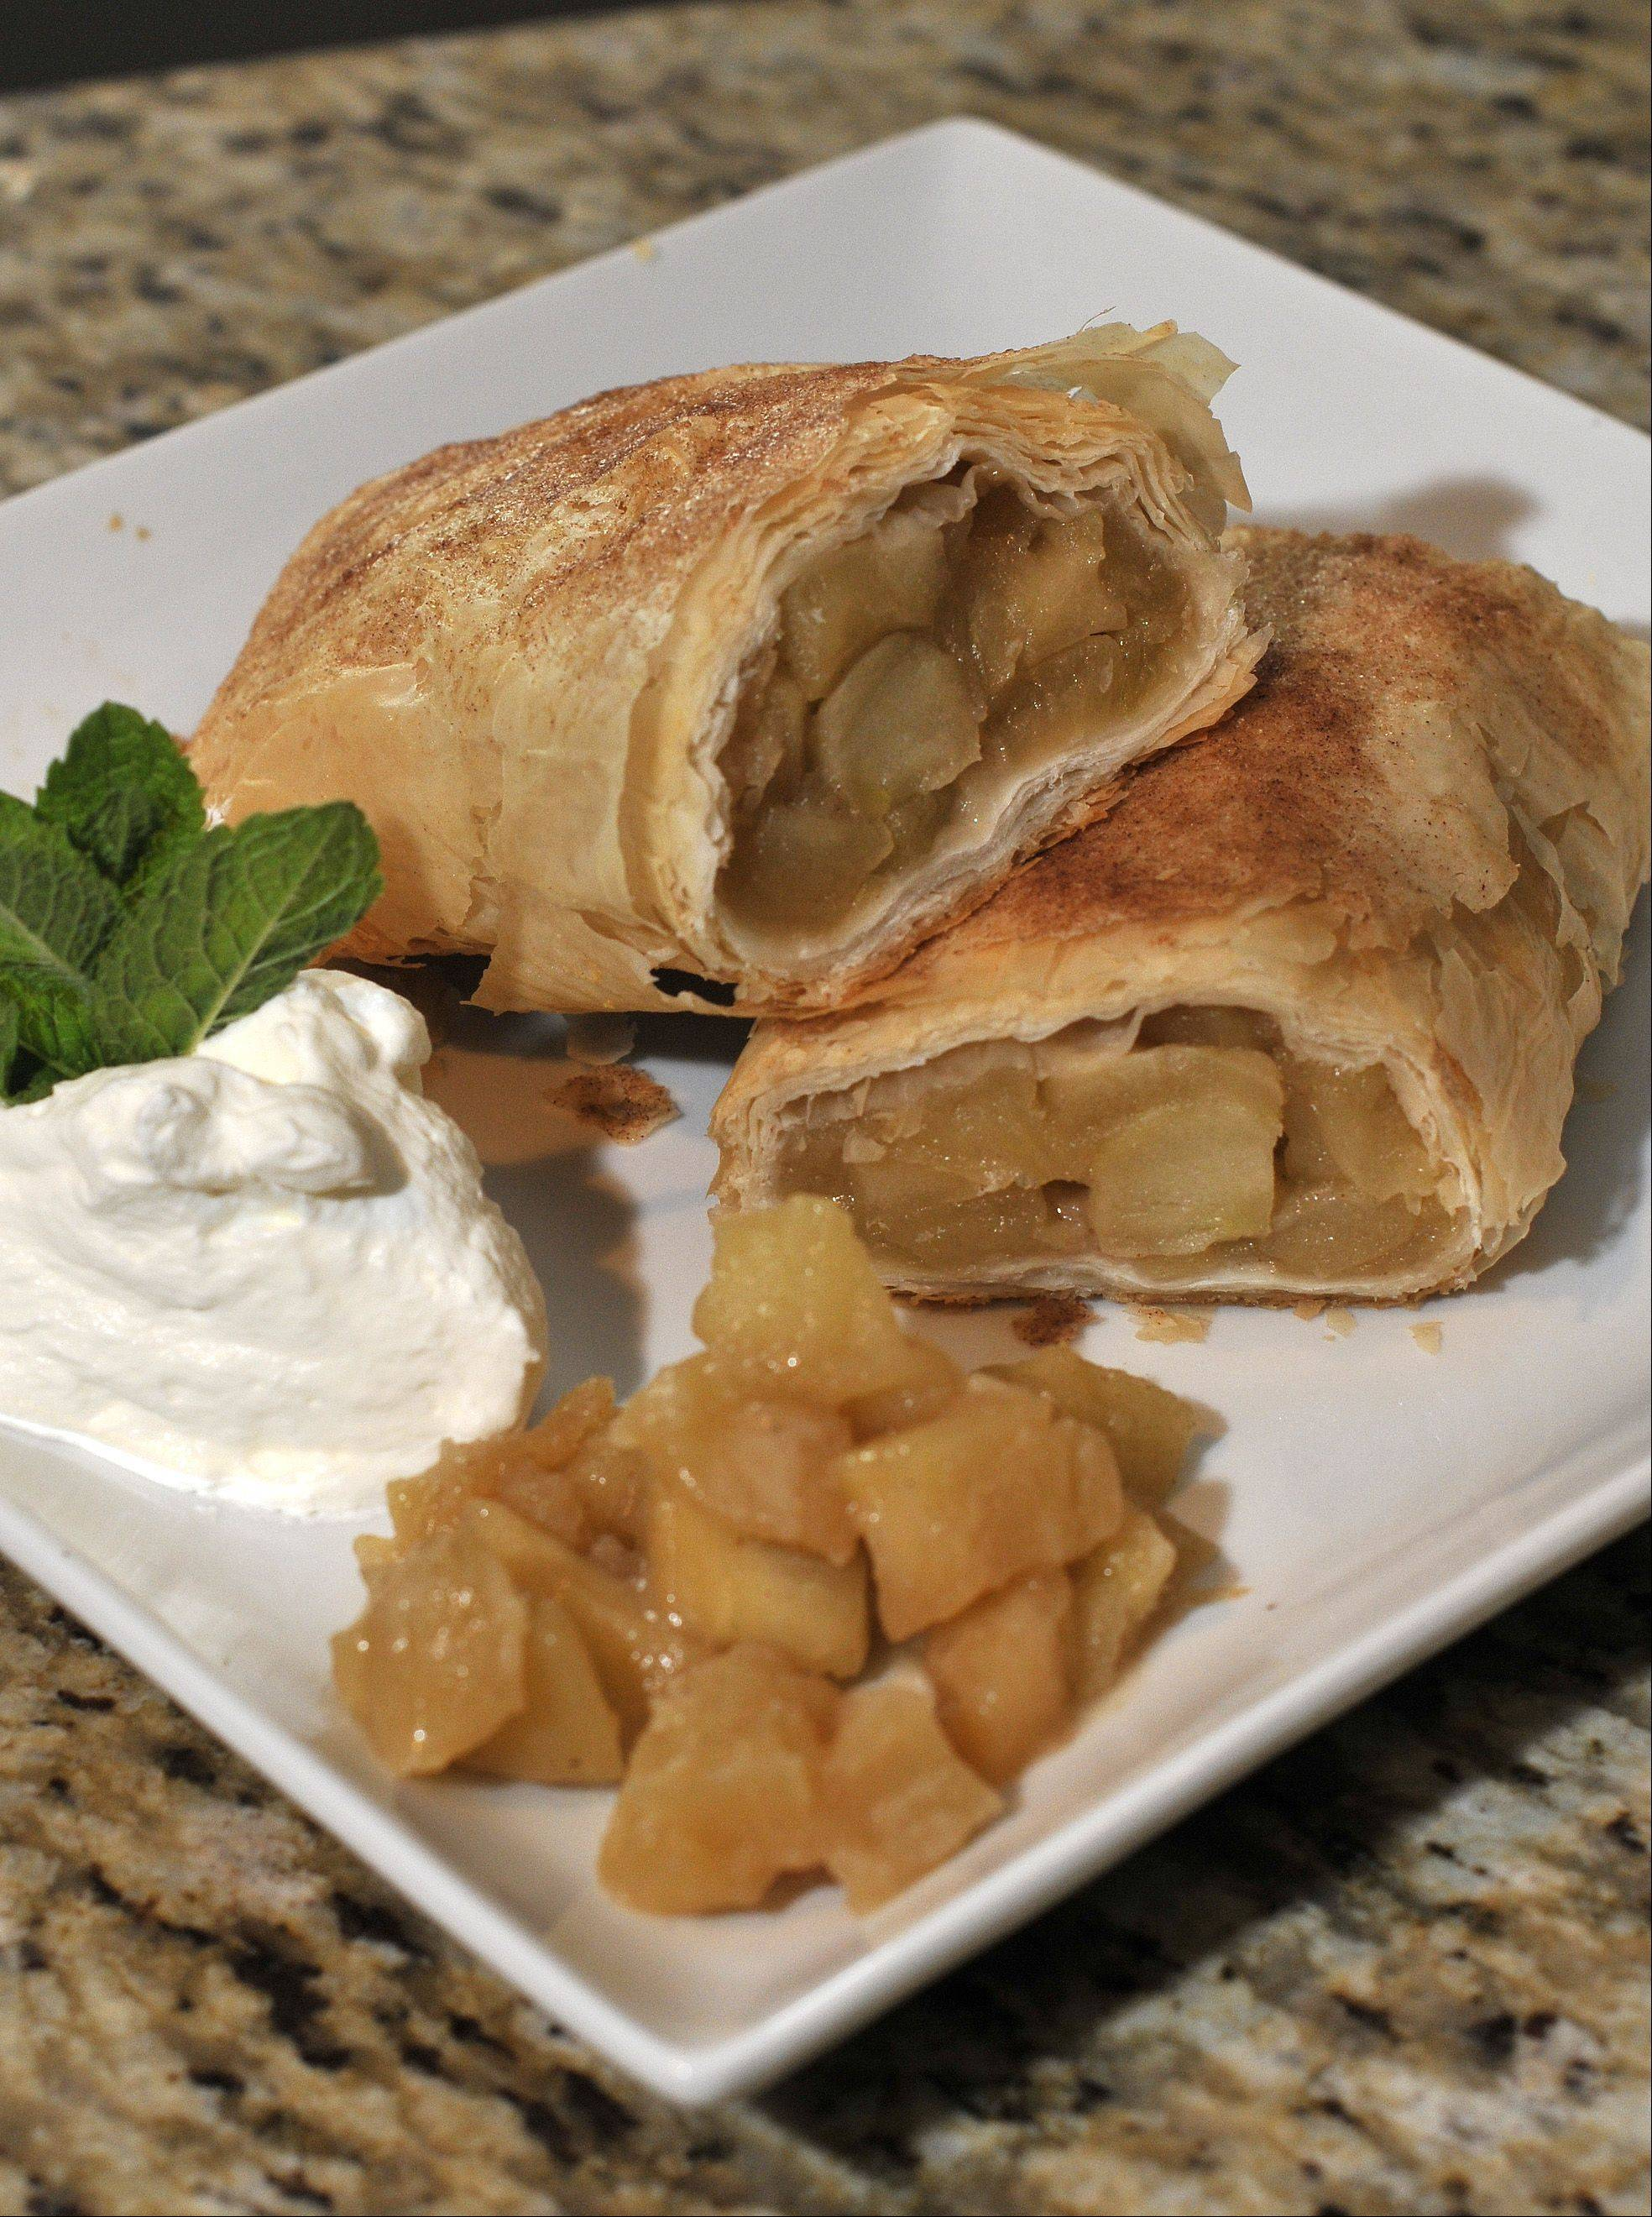 Brian Emmett of Itasca makes his own pastry for his apple strudel.